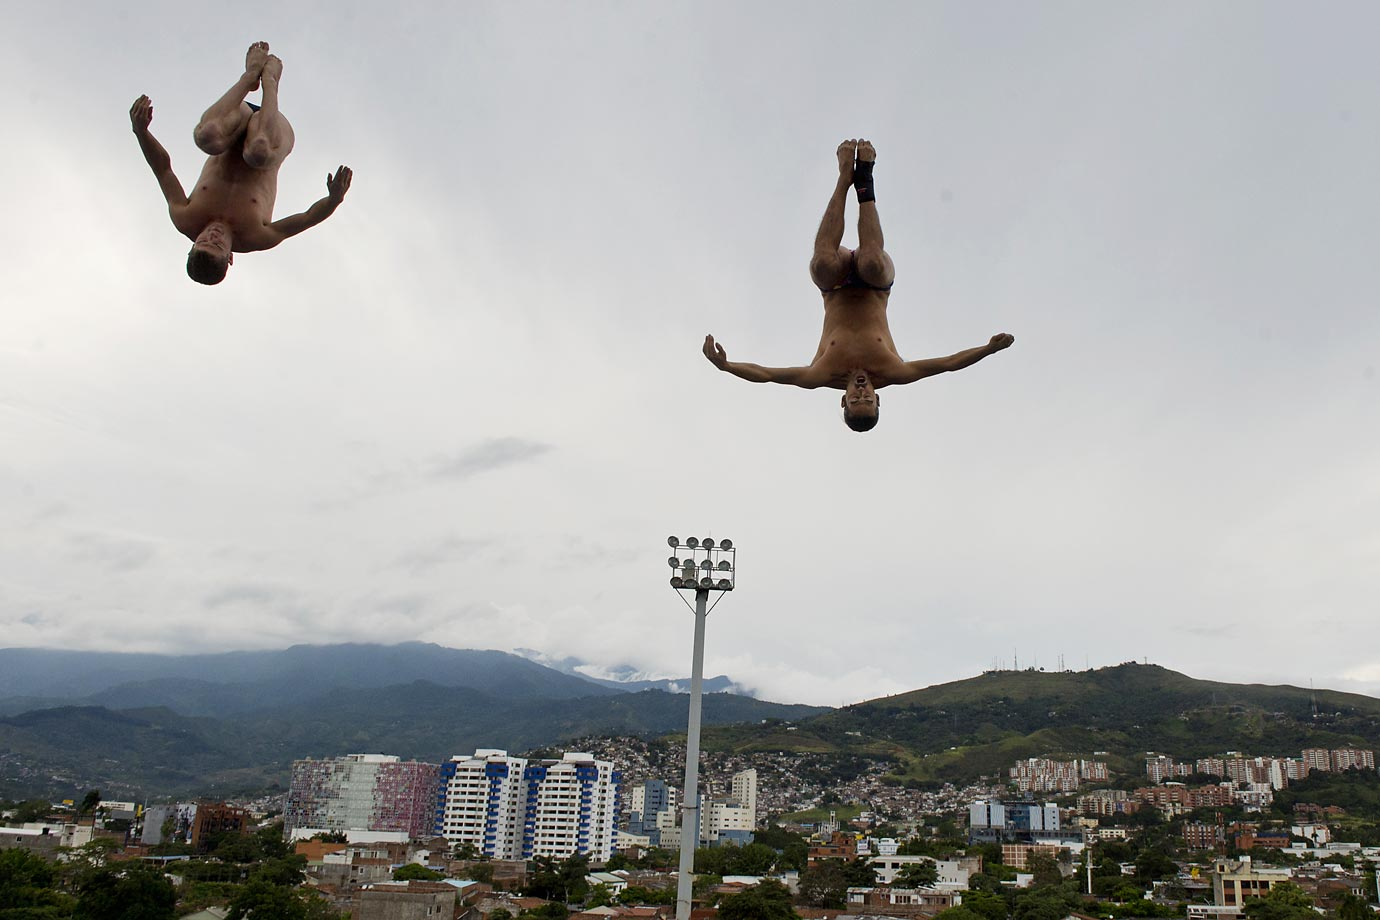 Orlando Duque (right) of Colombia and David Culturi of the U.S. make a jump from the 27-meter-high platform during the Red Bull Qualifier Cliff Diving World Series.